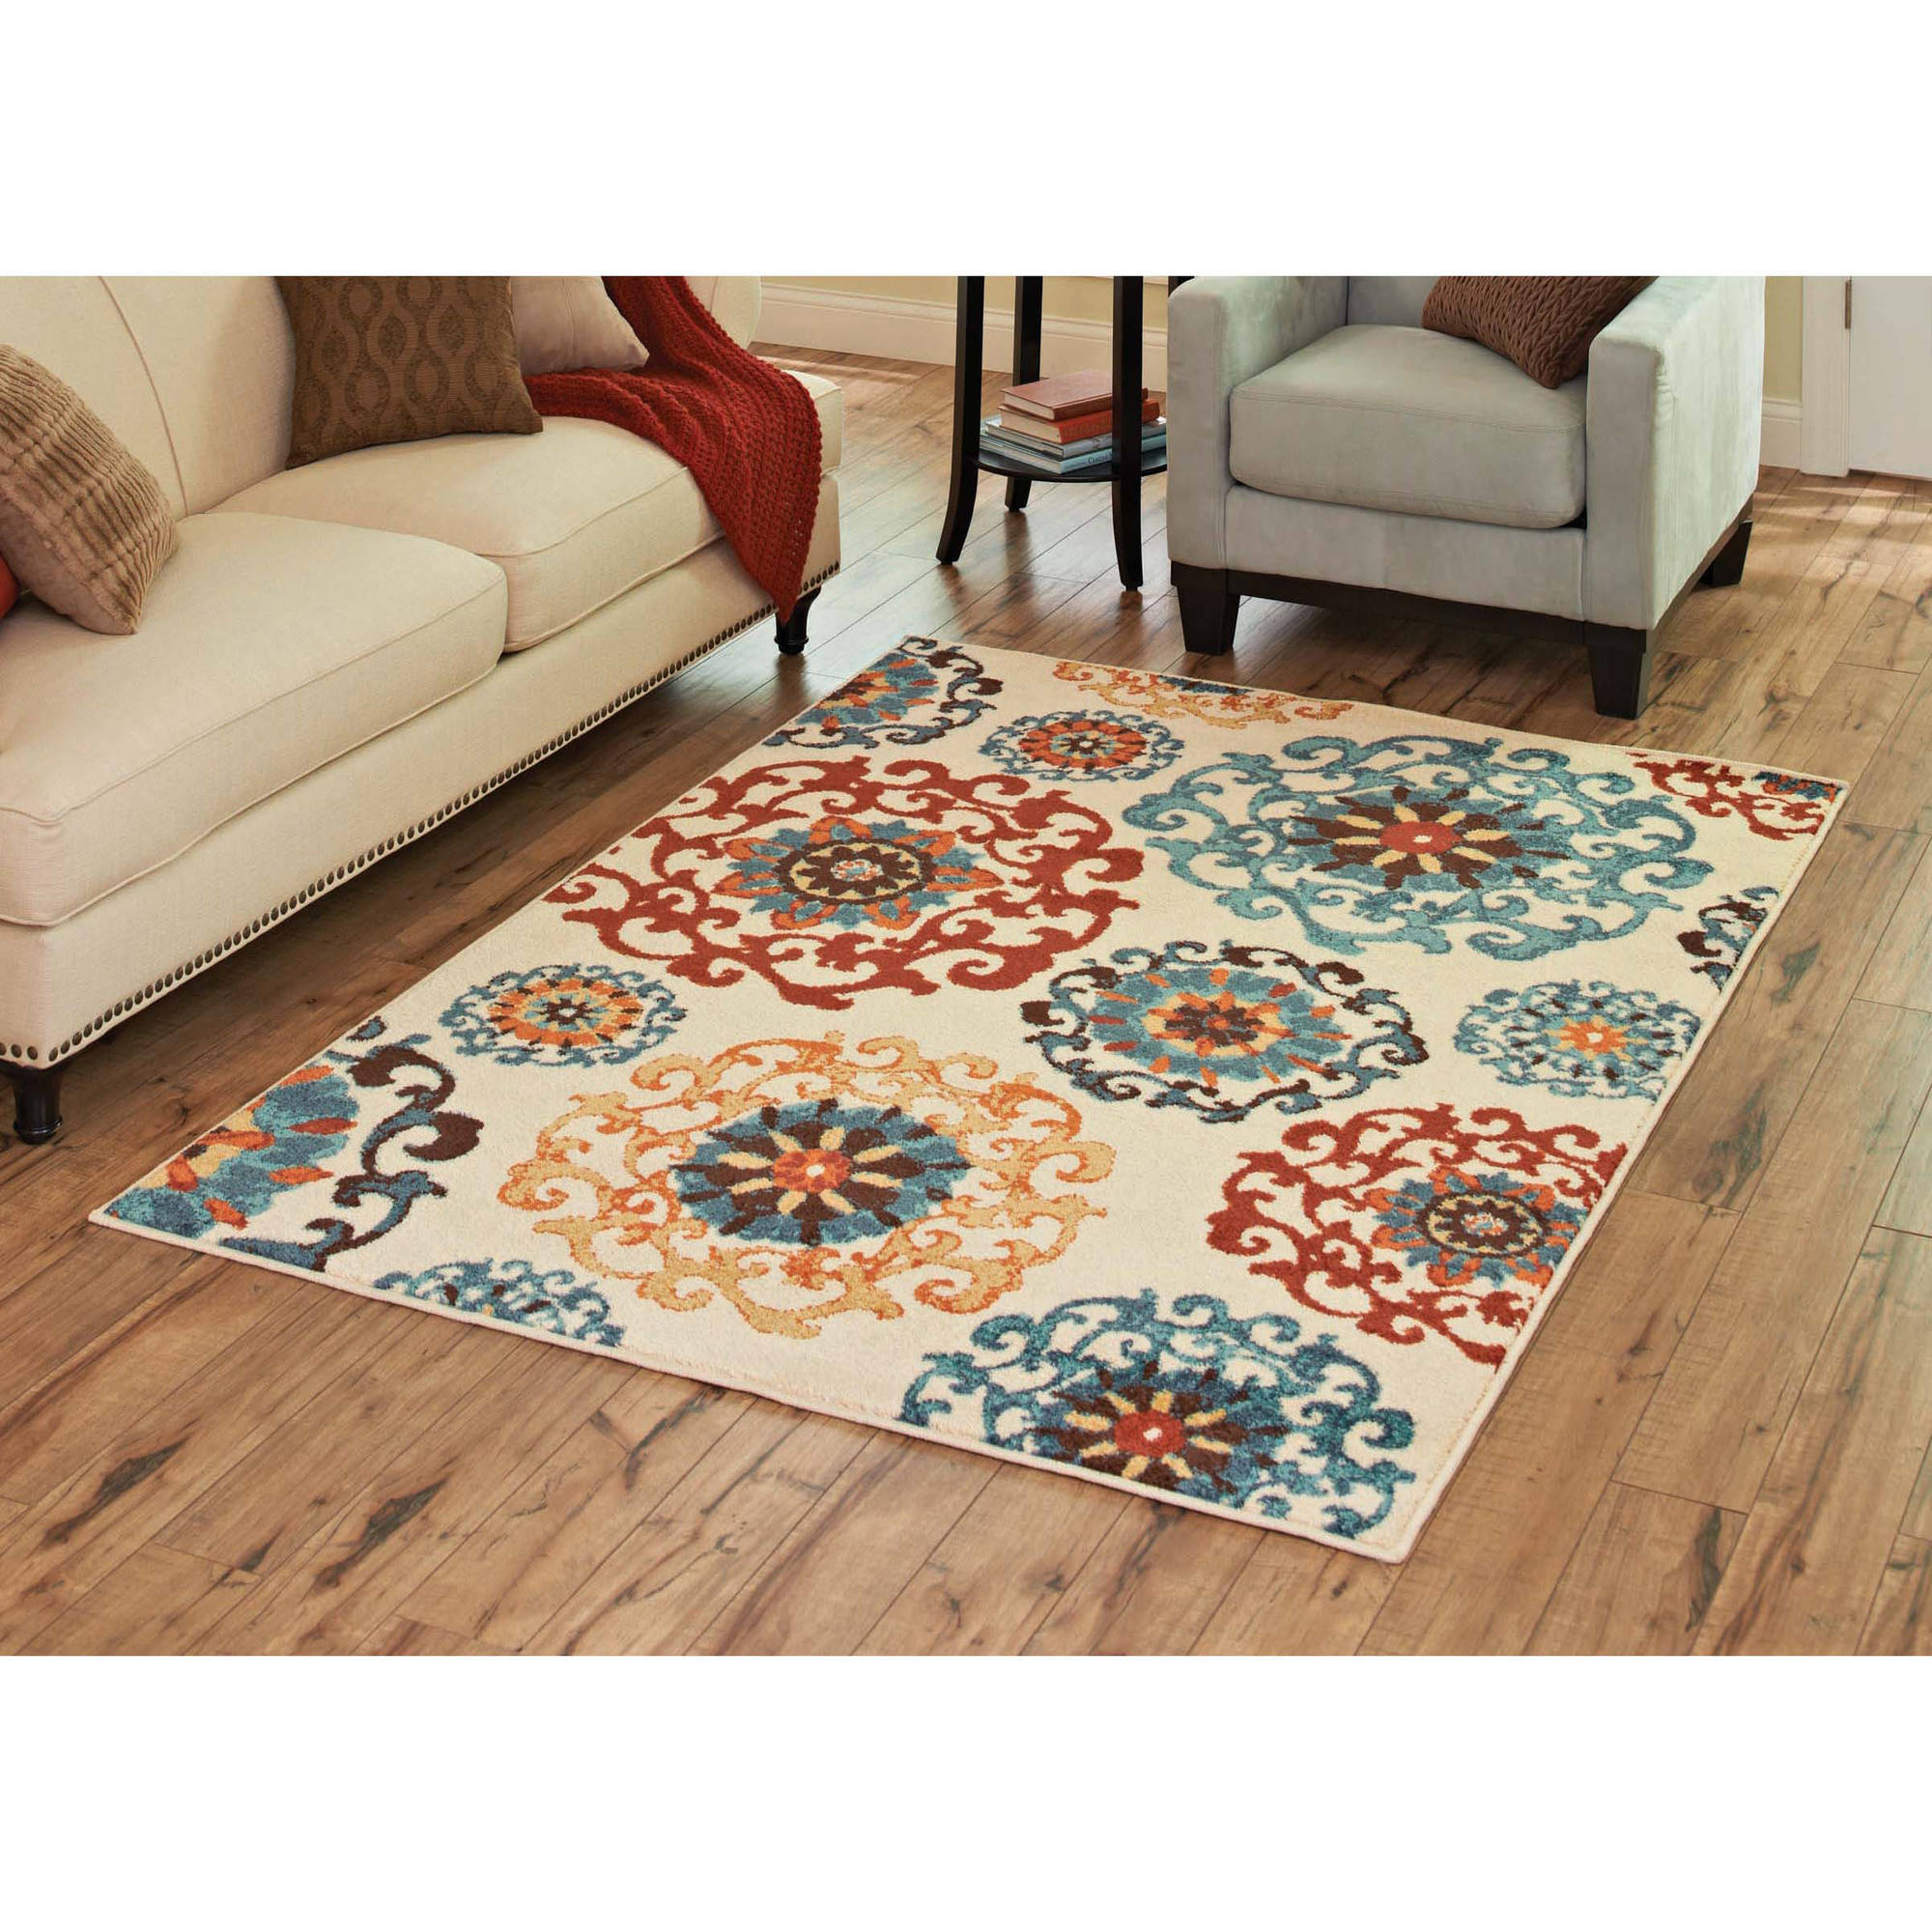 sizes depot carpet for alltelmd accent cheap blue sale ottawa hunky x navy ivory soft most aqua grey rug slate royal large throw and pink bright home ideas club area dory light rugs teal